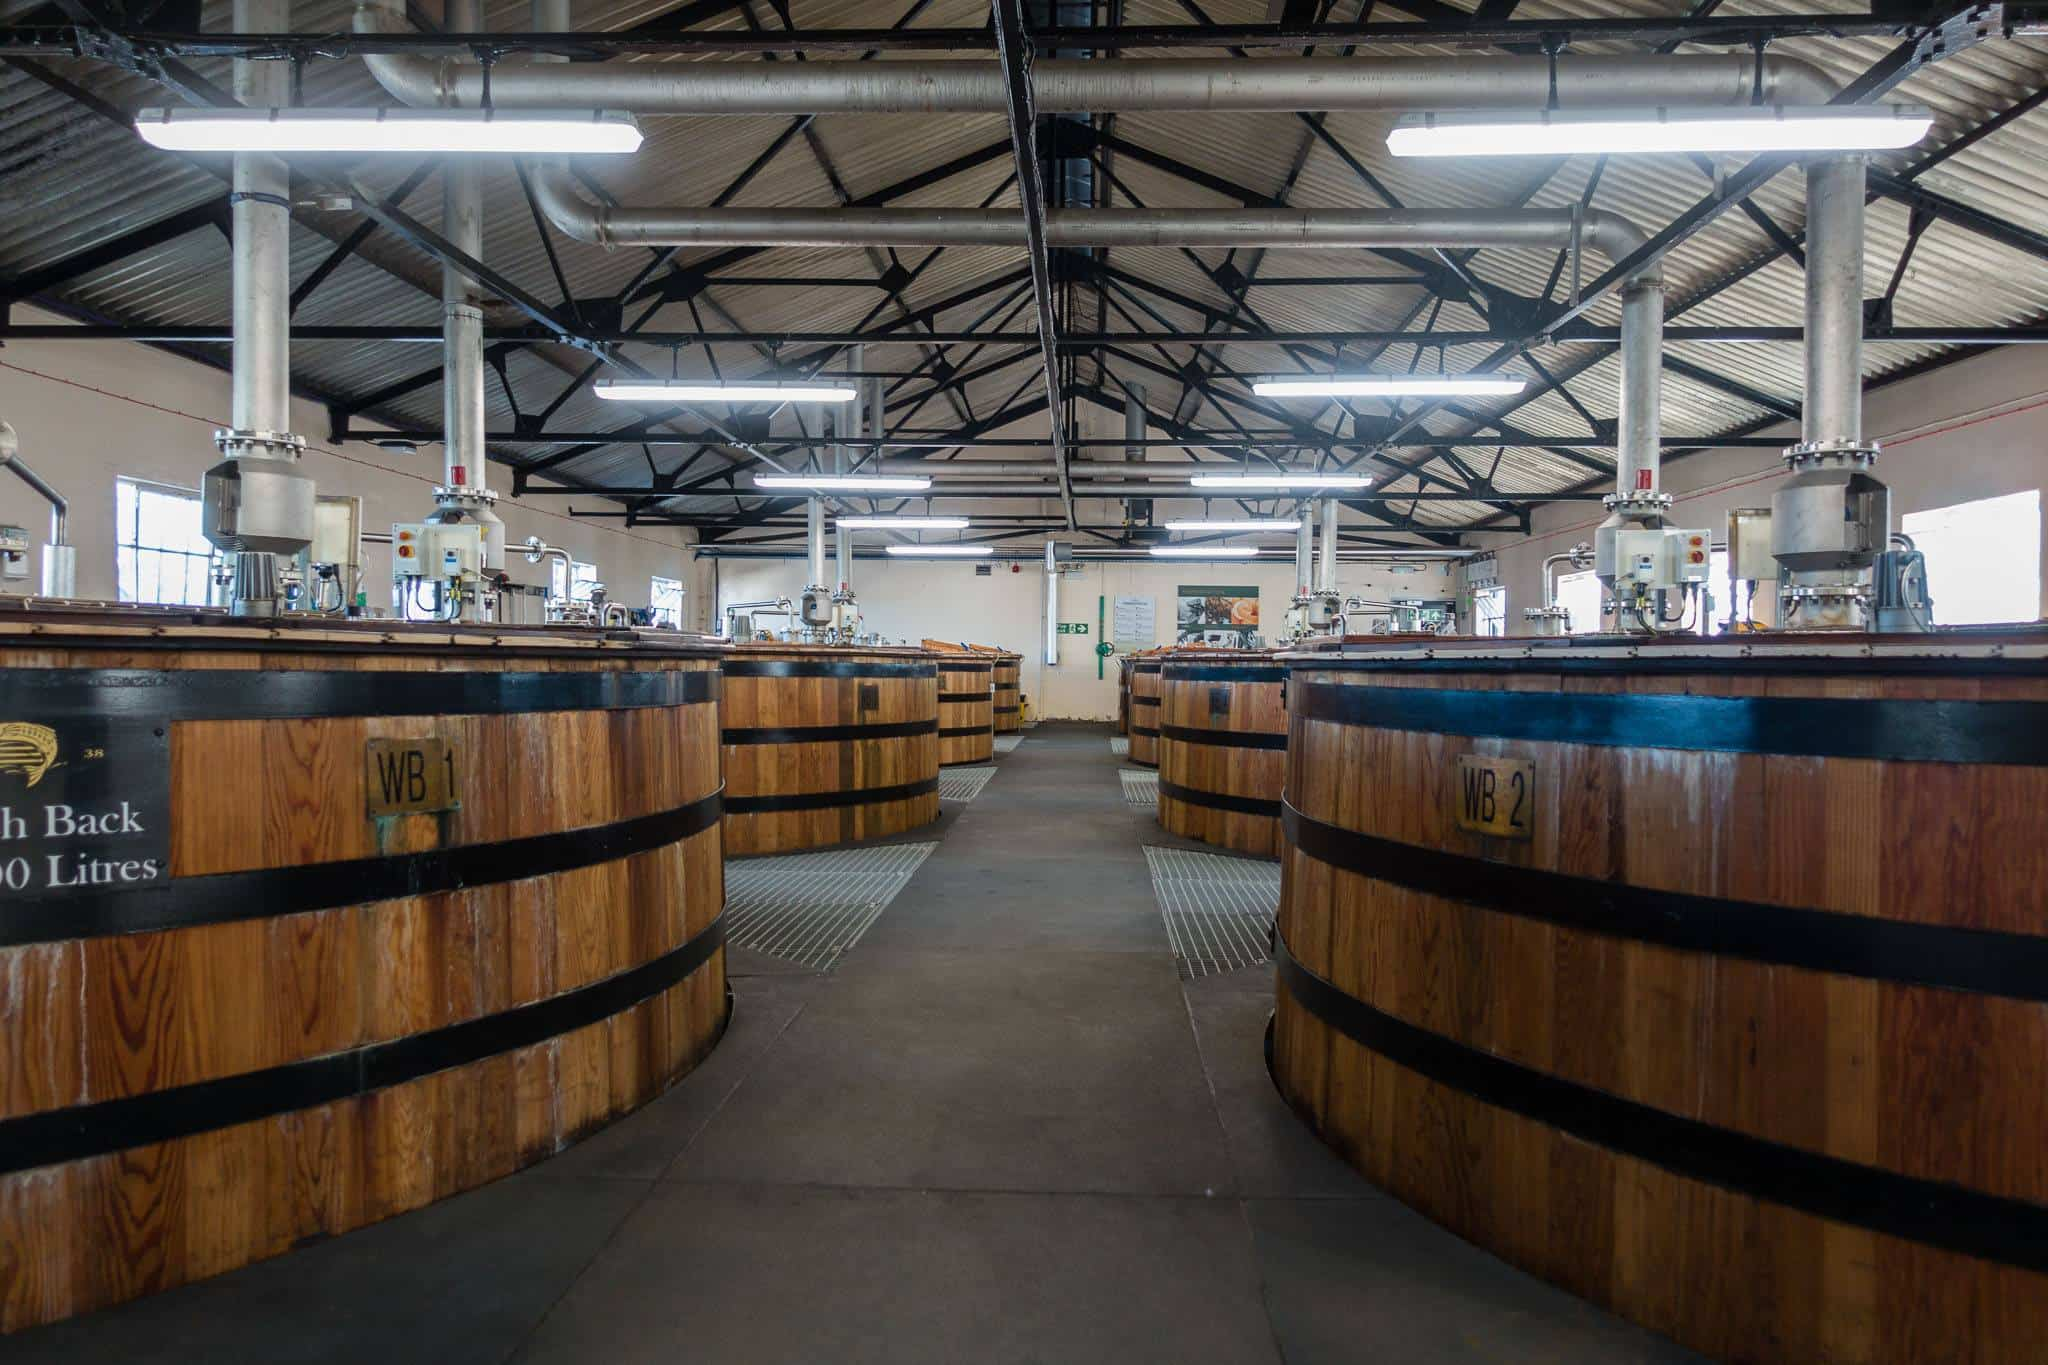 The fermentation process at Glen Ord takes place in wooden barrels.